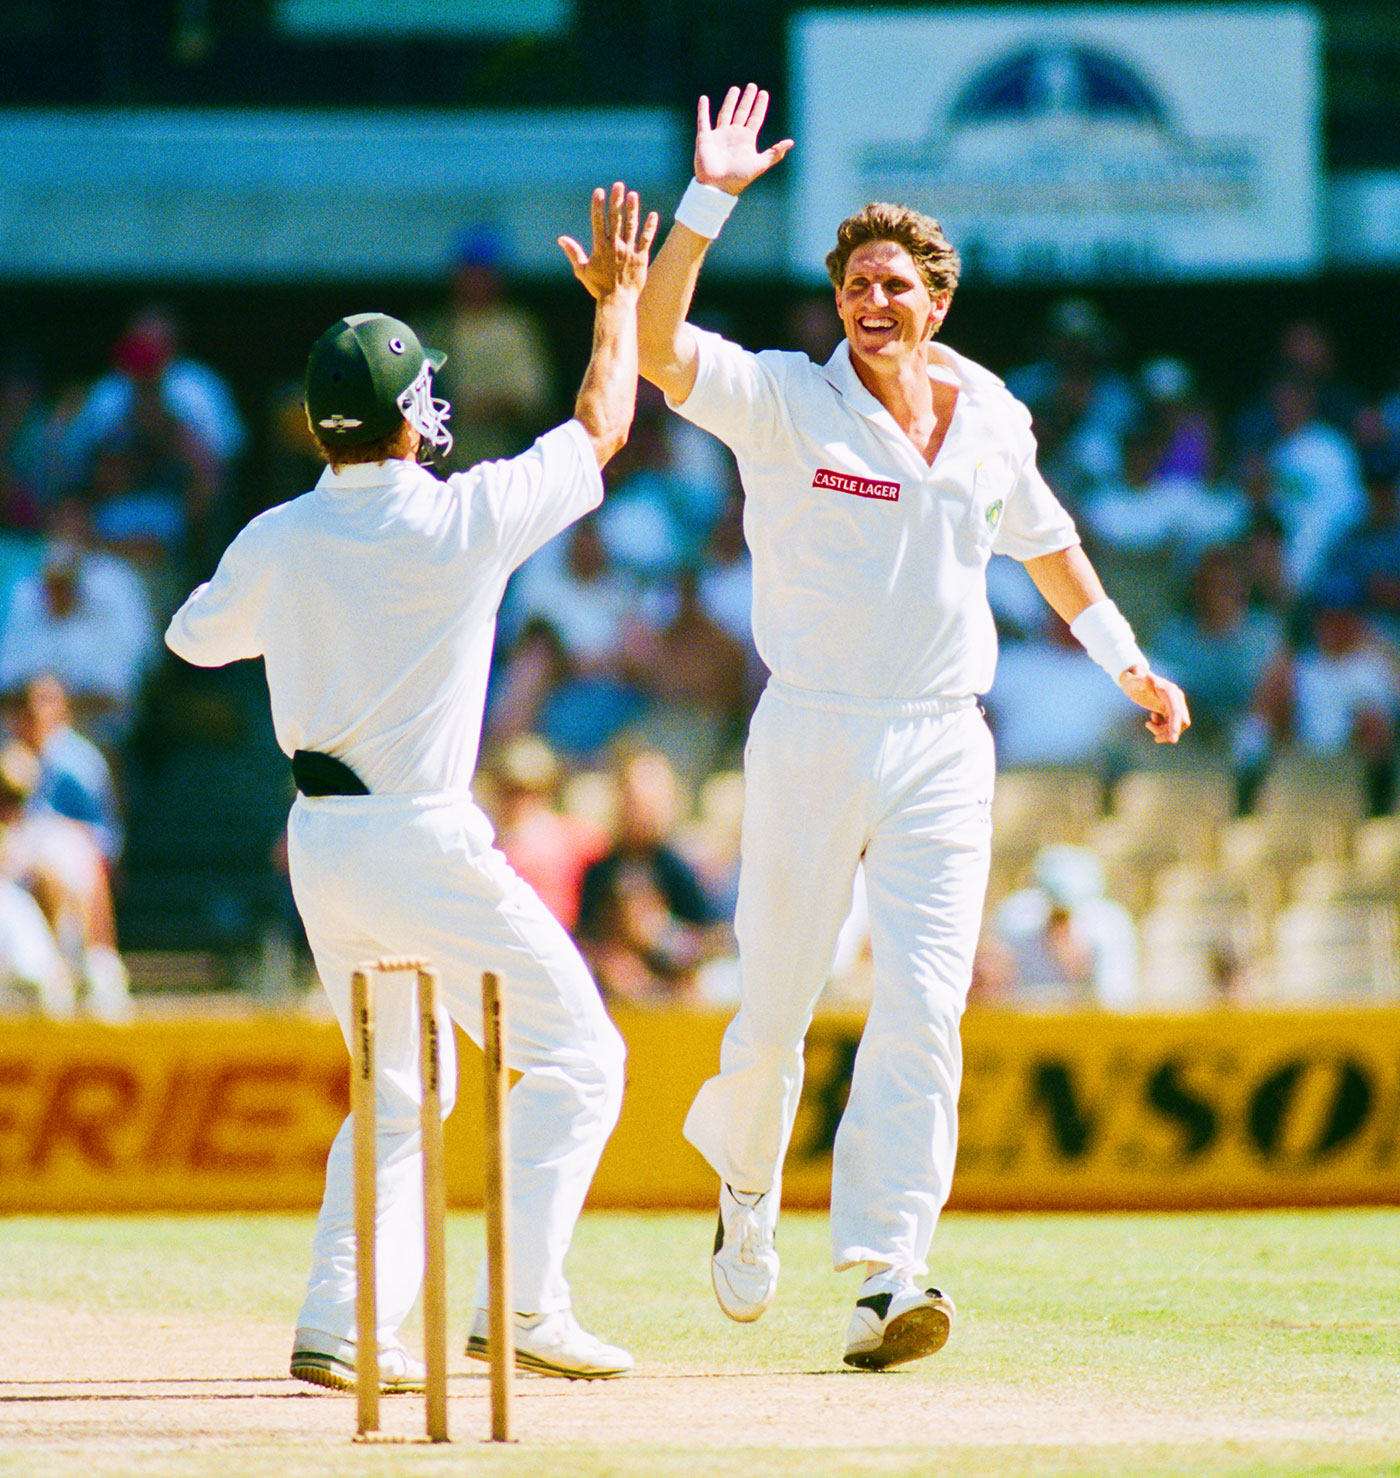 Fanie de Villiers celebrates a wicket, Australia v South Africa, 2nd Test, Sydney, 5th day, January 6, 1994